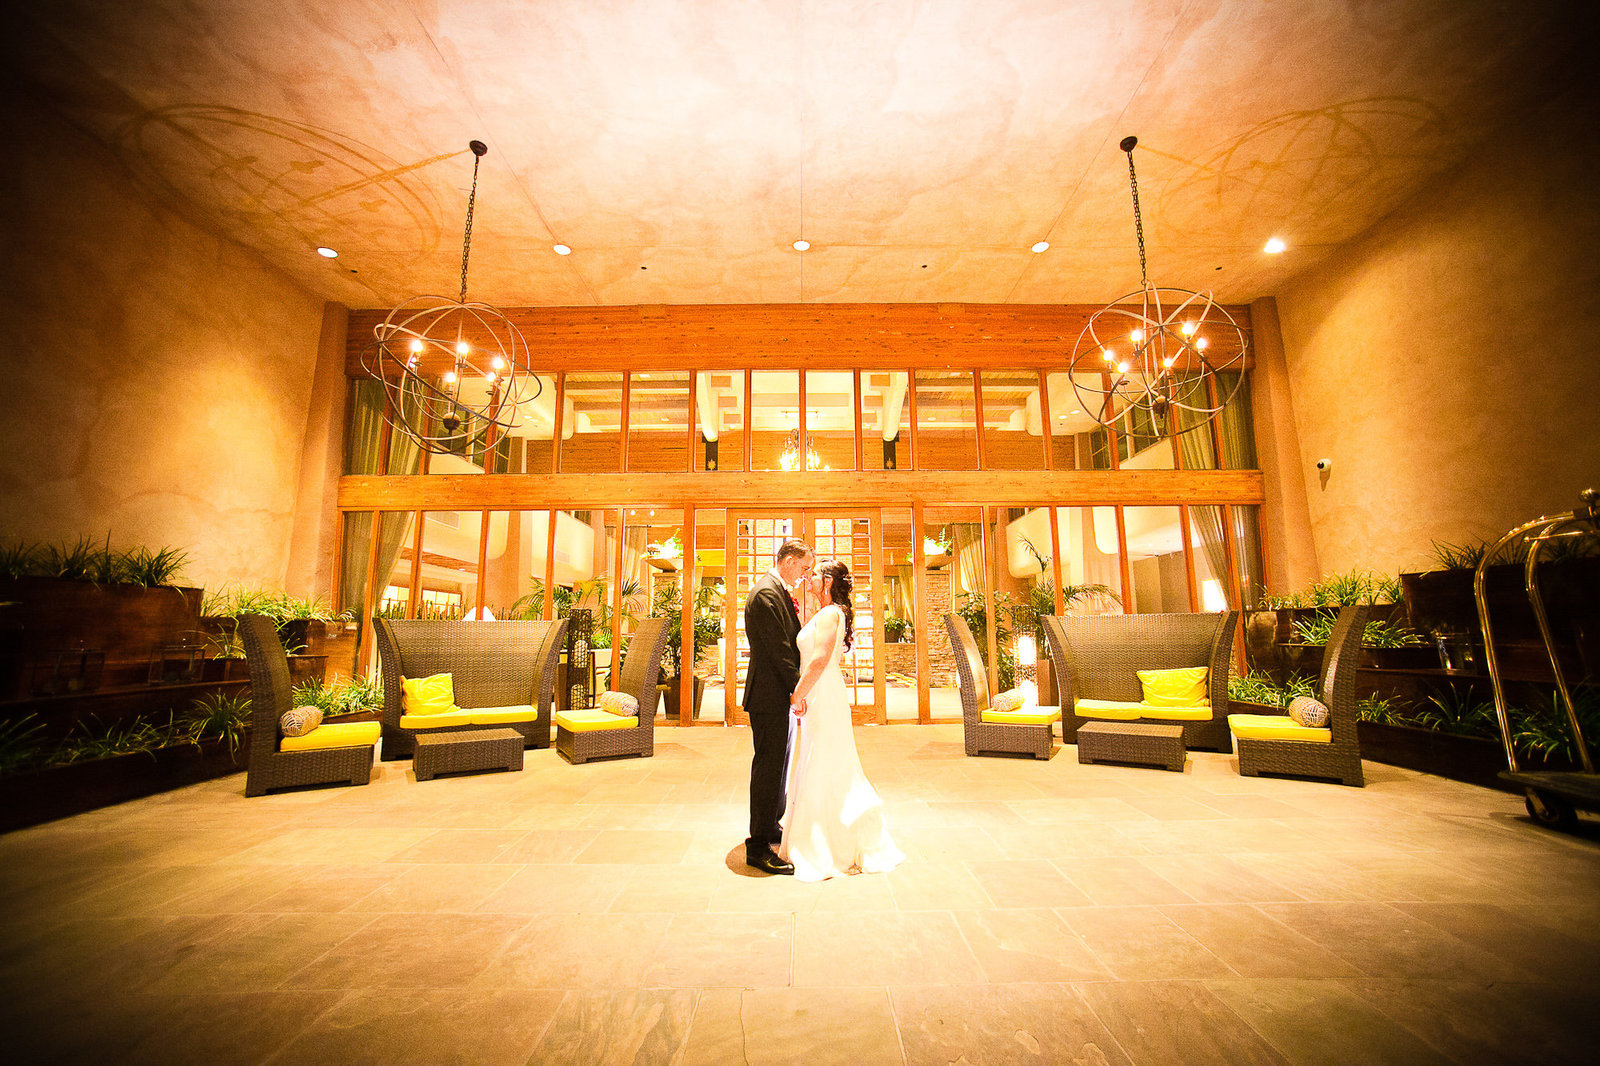 firesky-resort-wedding-bride-groom-stephen-sheffrin-photography